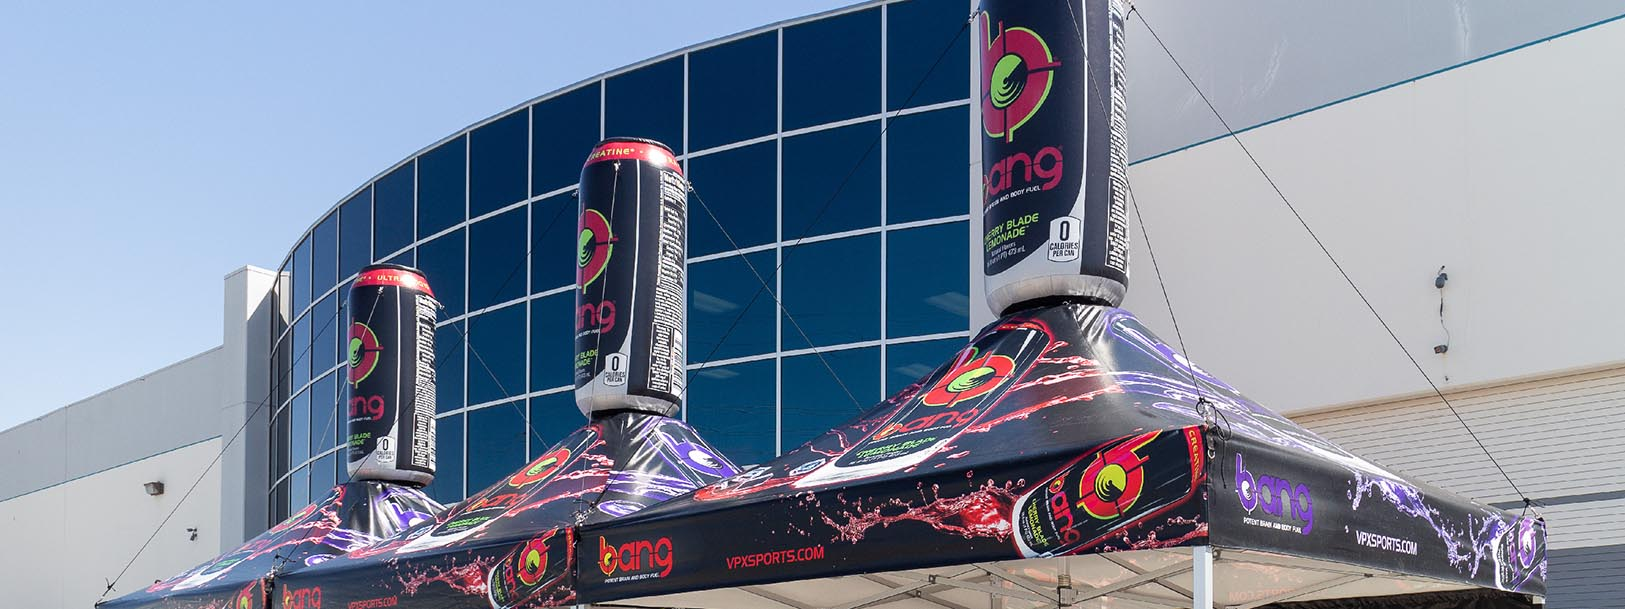 Bang-energy-drink-canopy-with-custom-inflatable.jpg